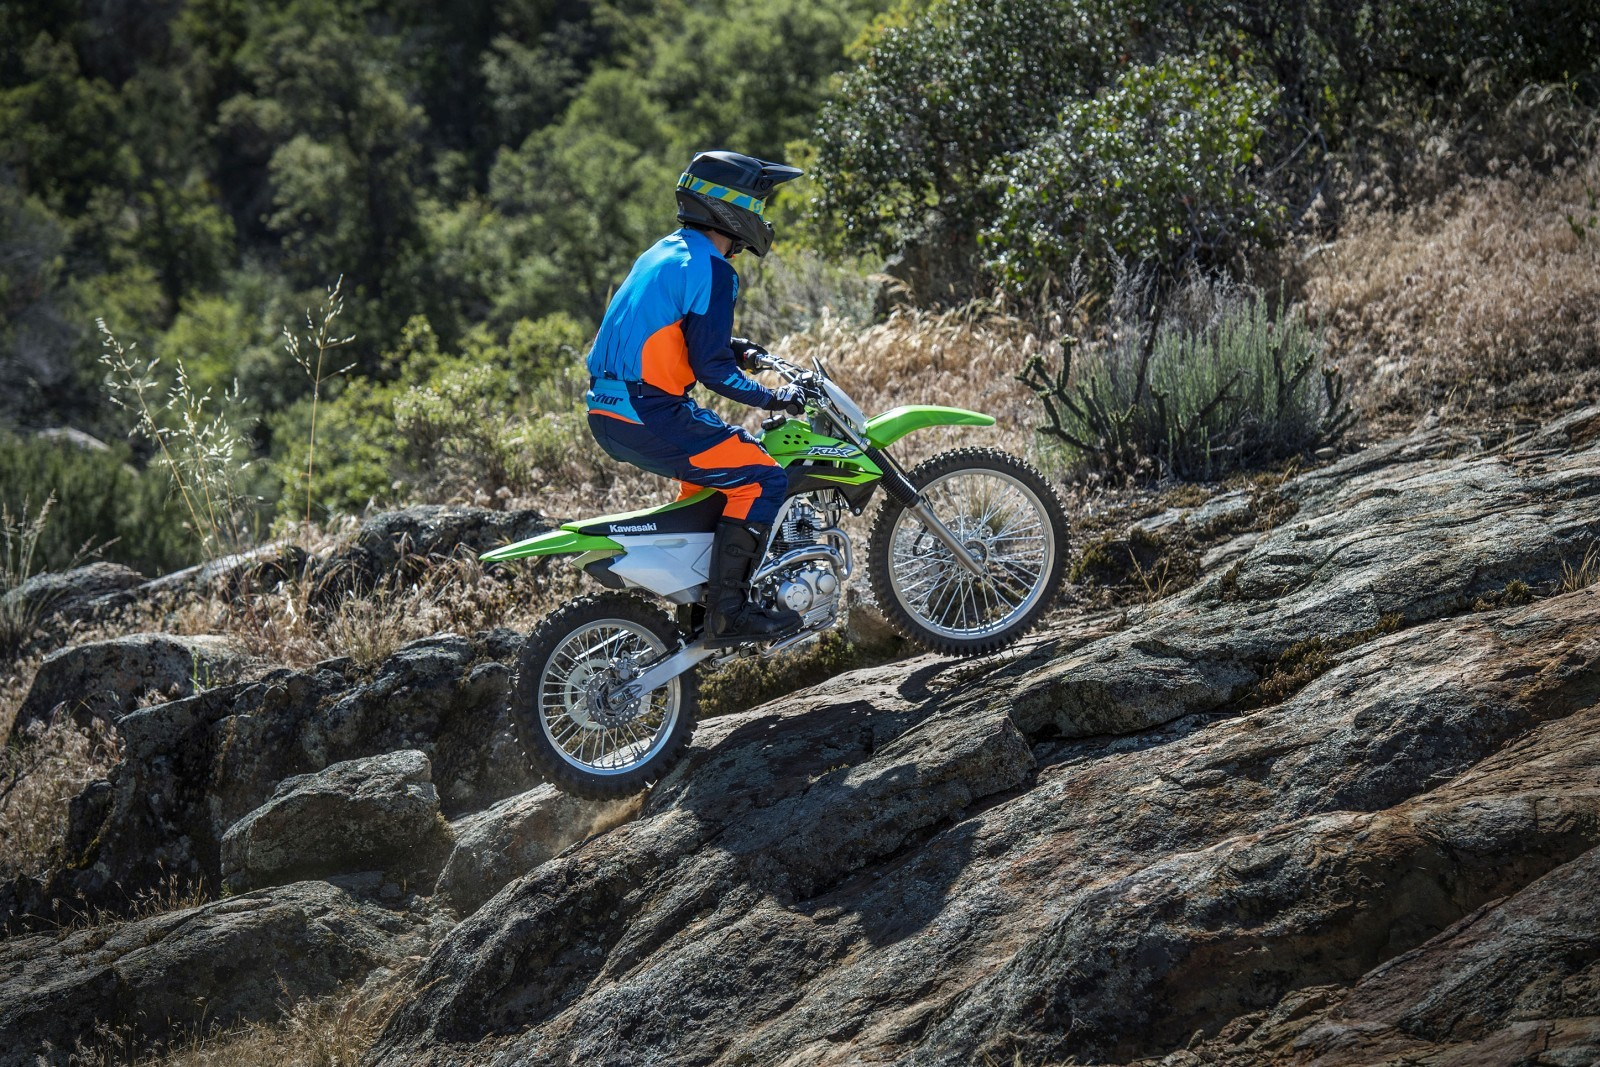 Kawasaki-KLX140-Official-Photographs-3